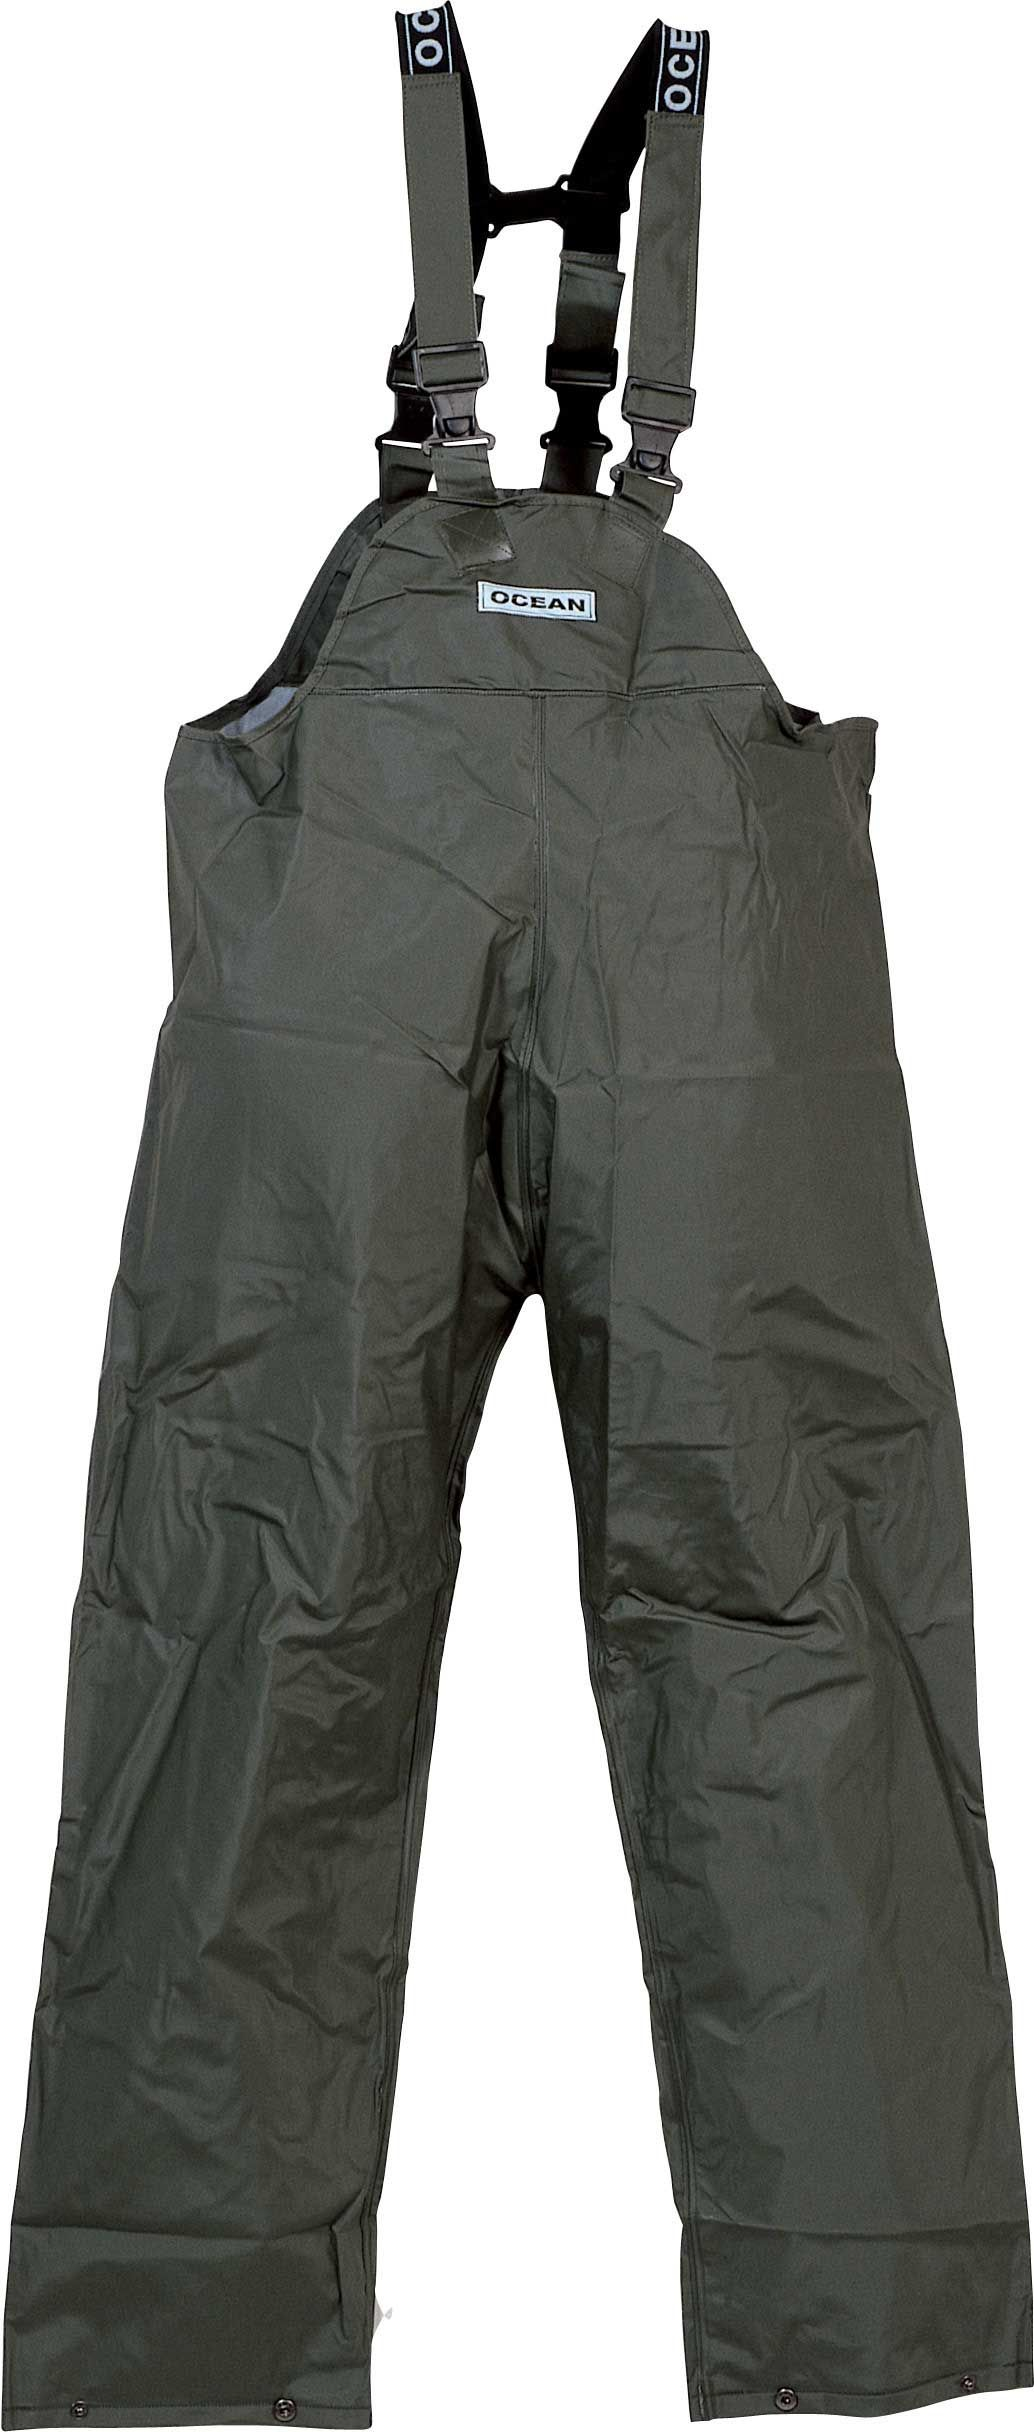 Ocean fishing clothing jackets trousers bib n braces for Waterproof fishing bibs